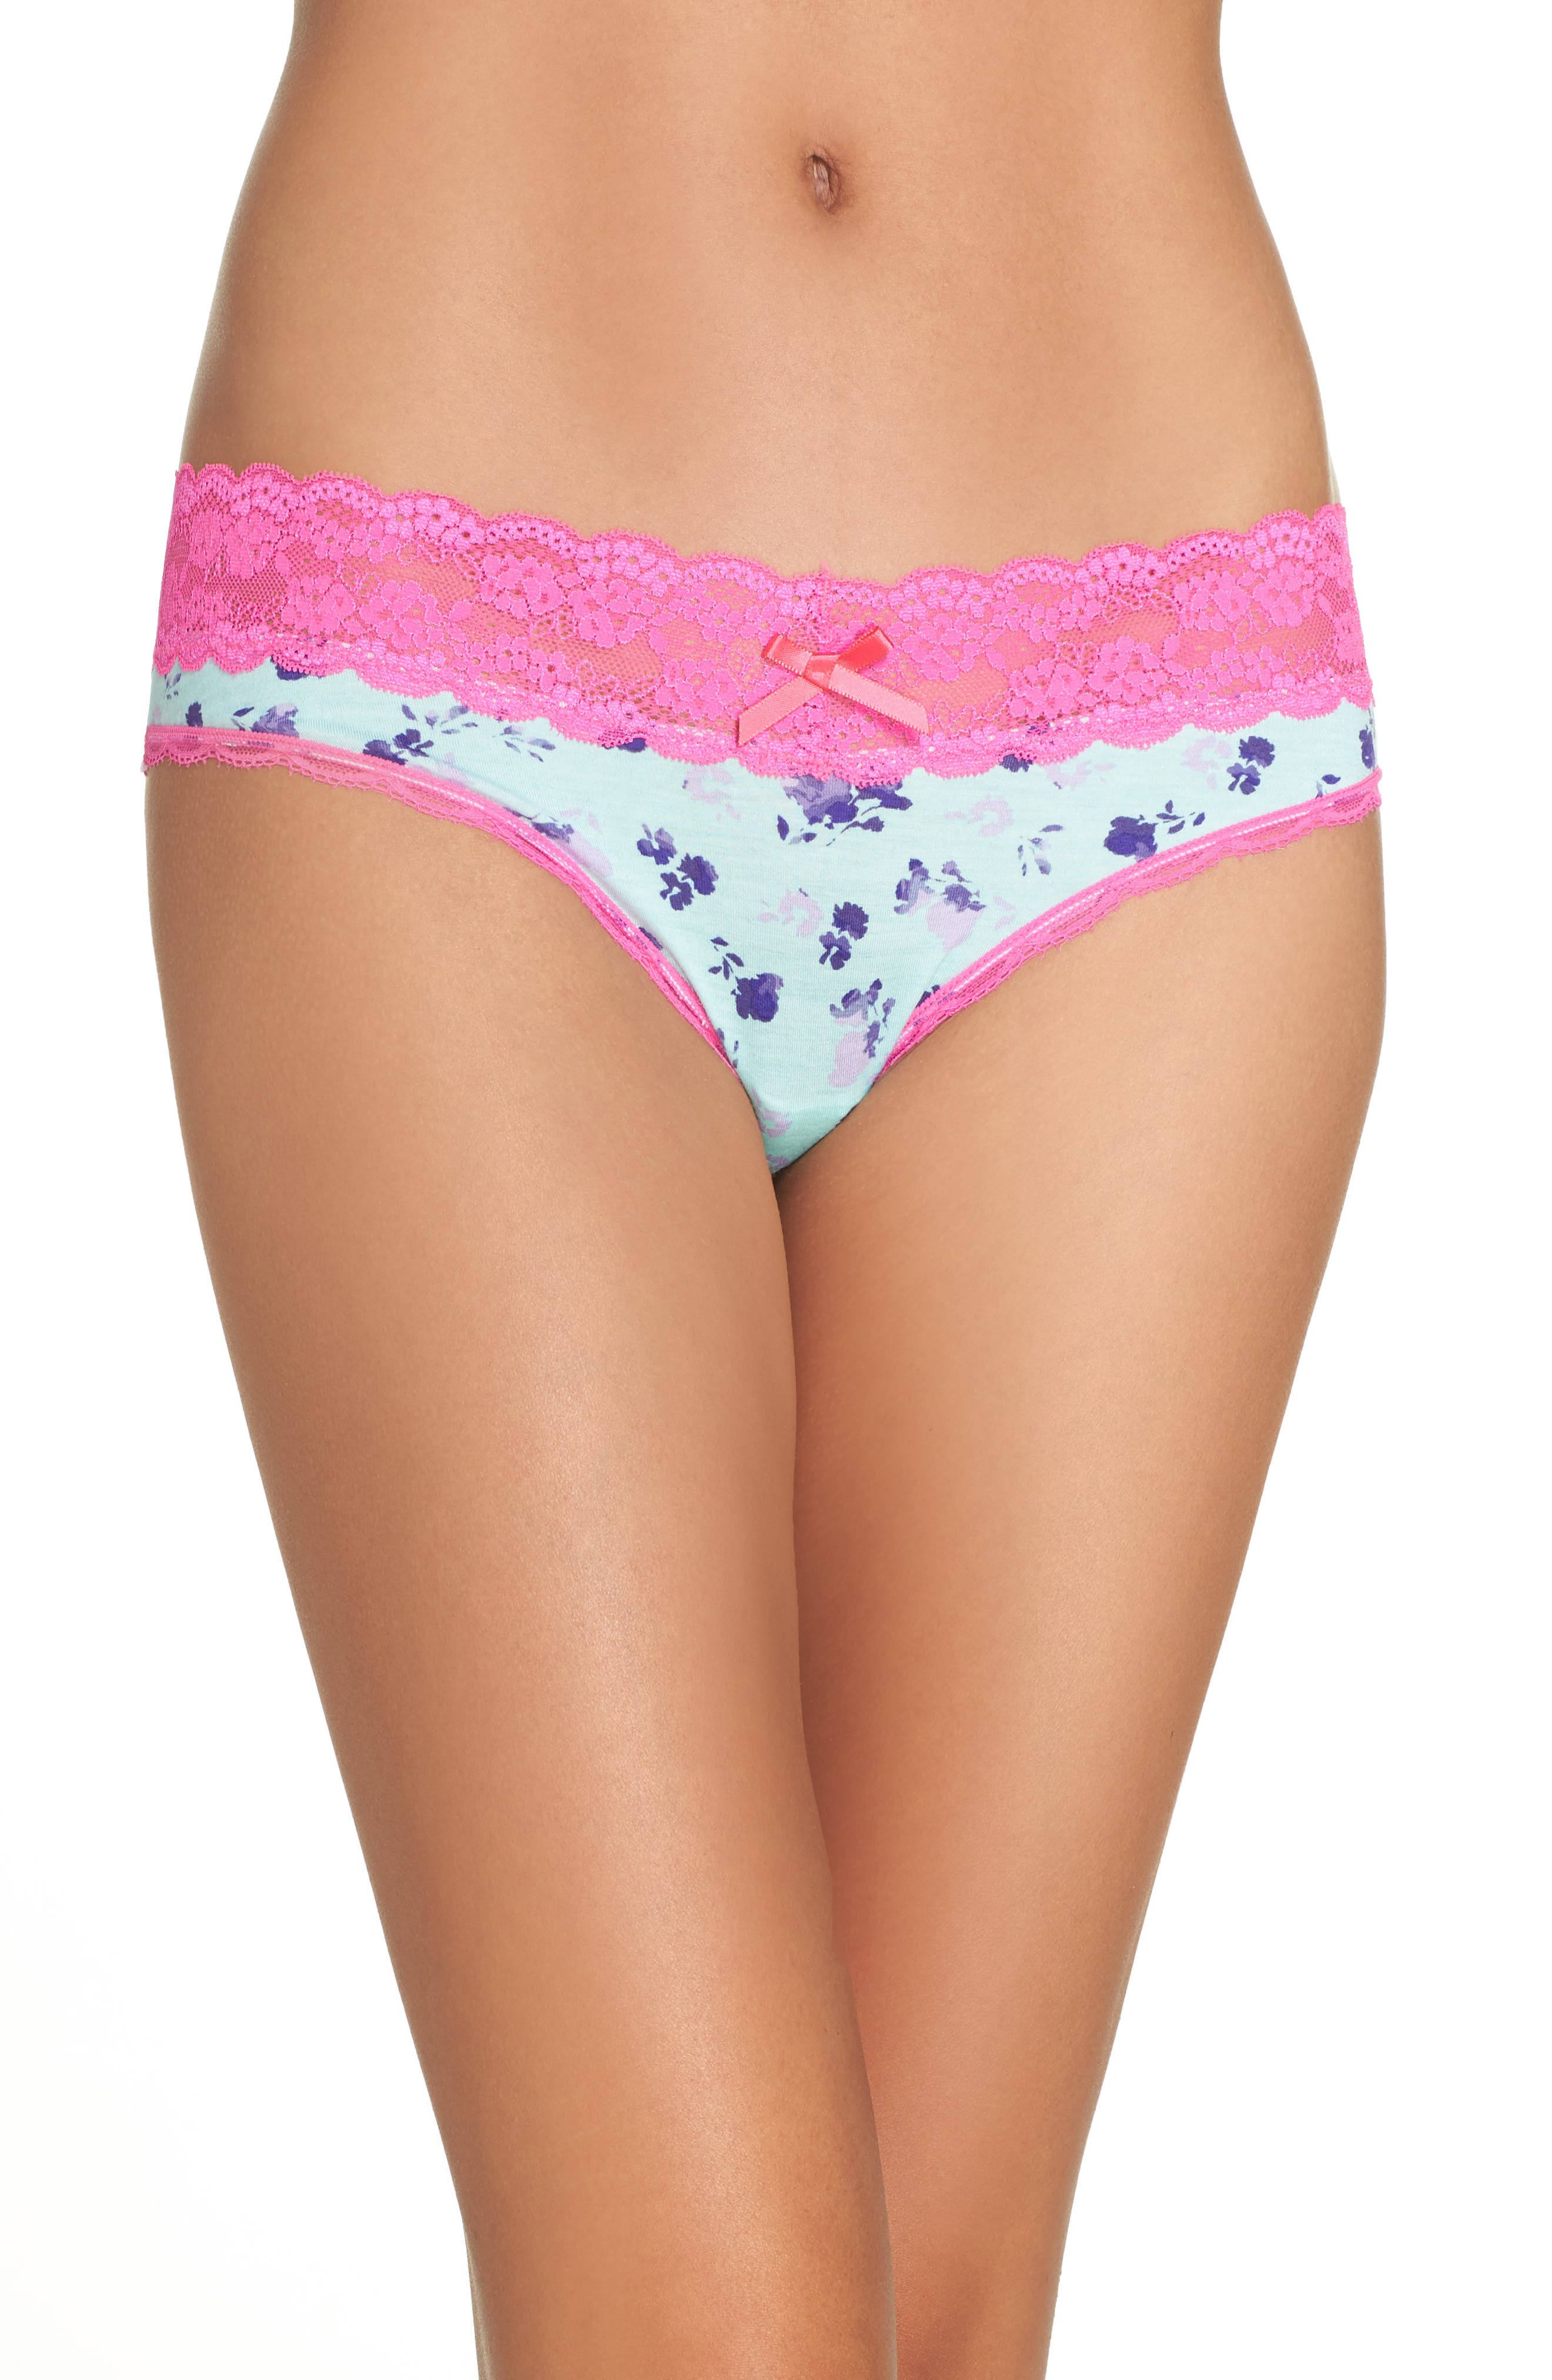 Honeydew Intimates Lace Trim Low Rise Thong (4 for $30)